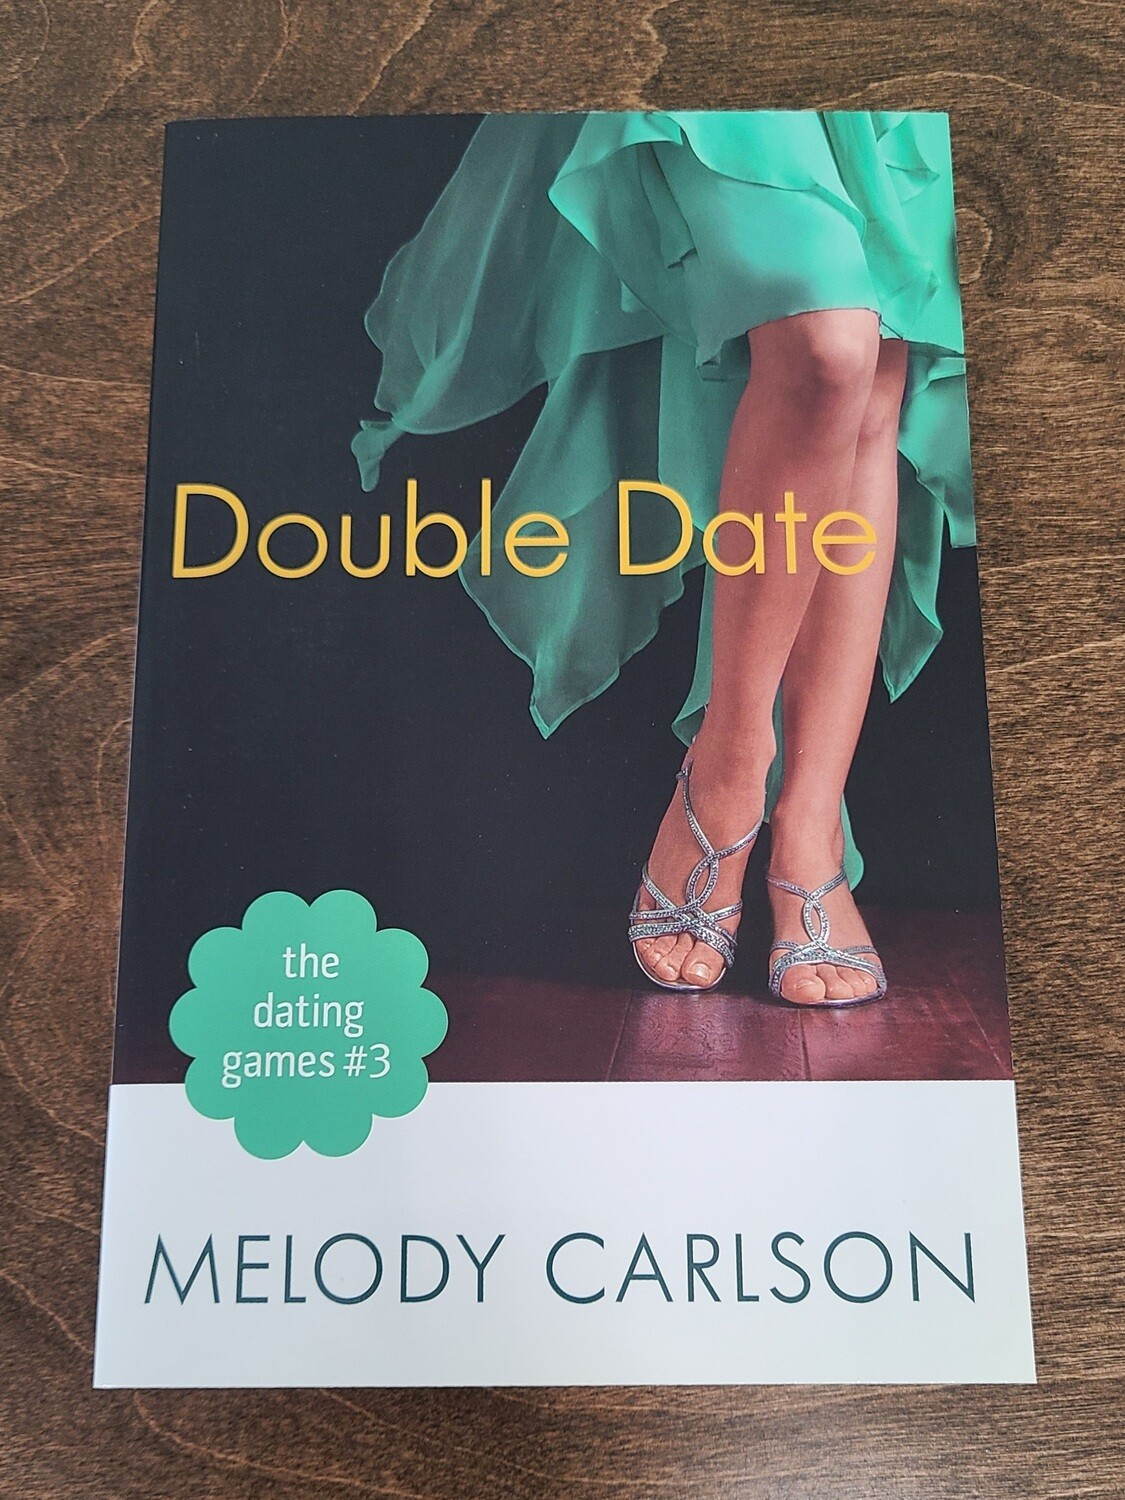 Double Date by Melody Carlson